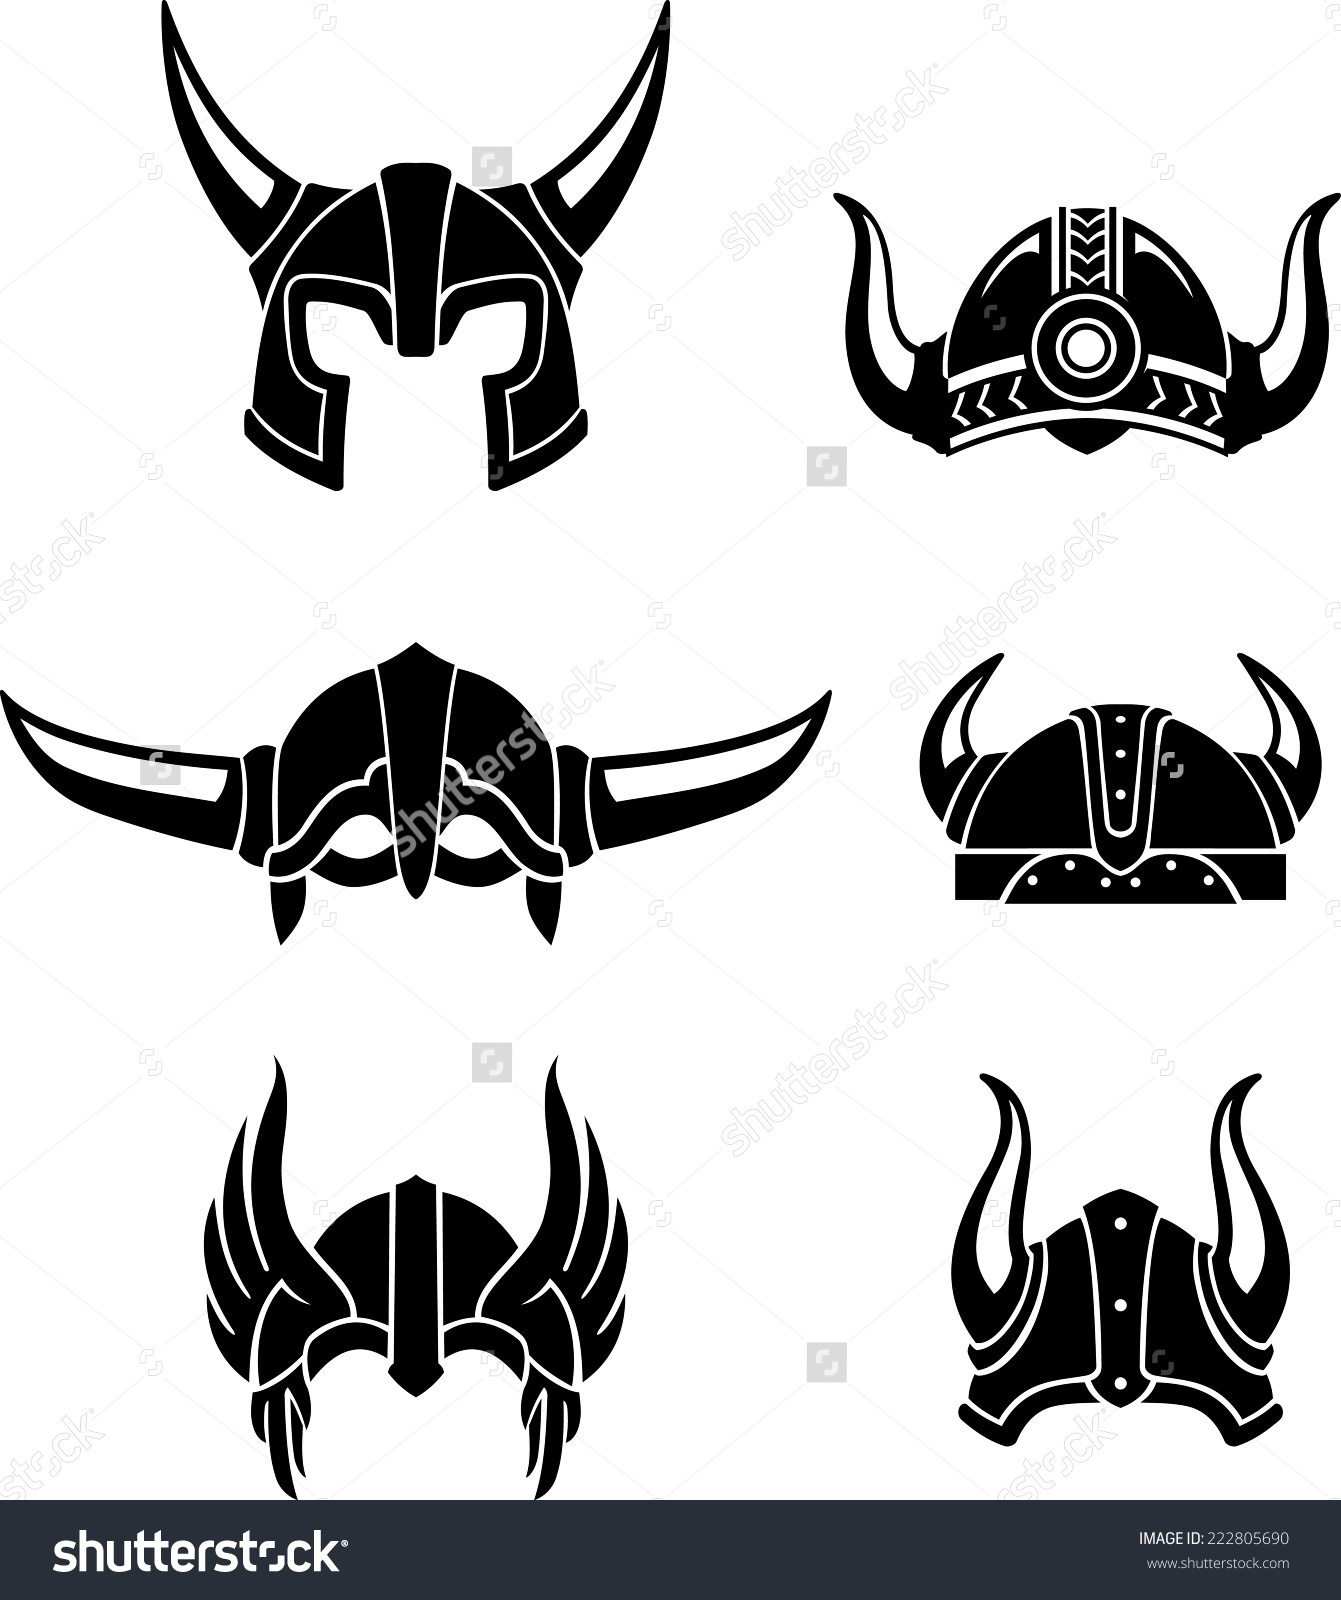 Medieval clipart viking Equipment Helmet Set gear or